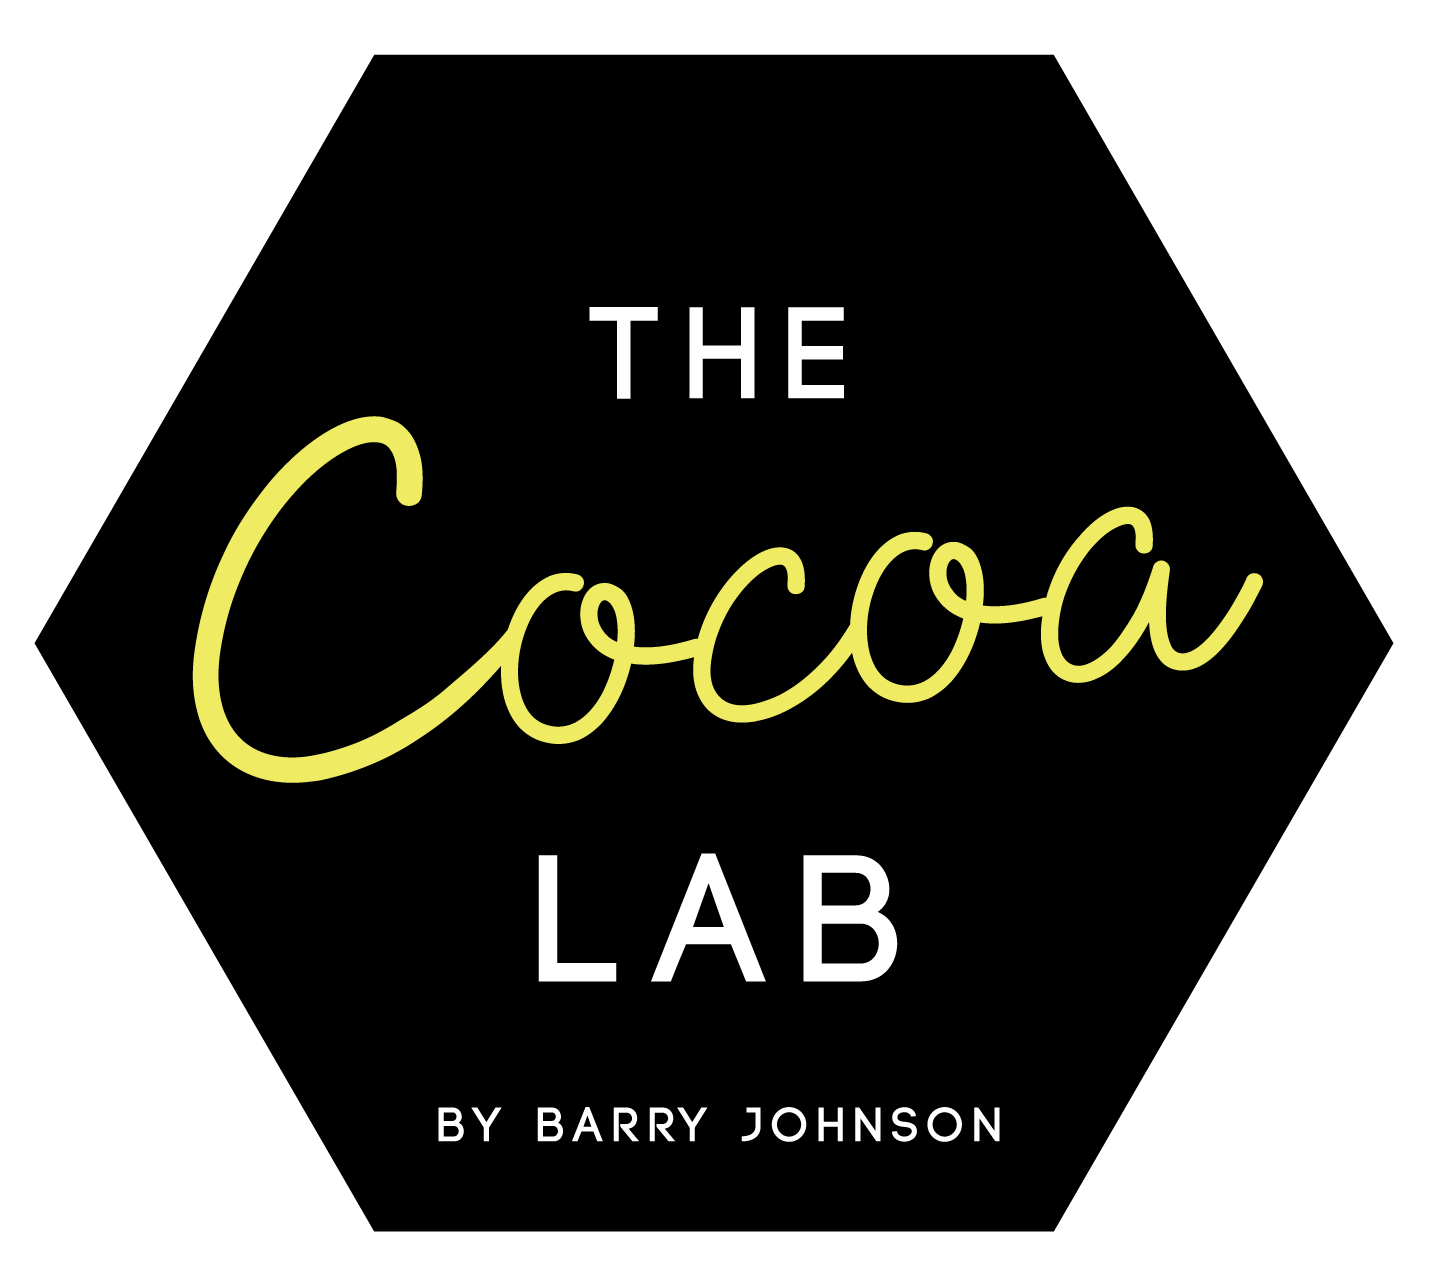 The Cocoa Lab